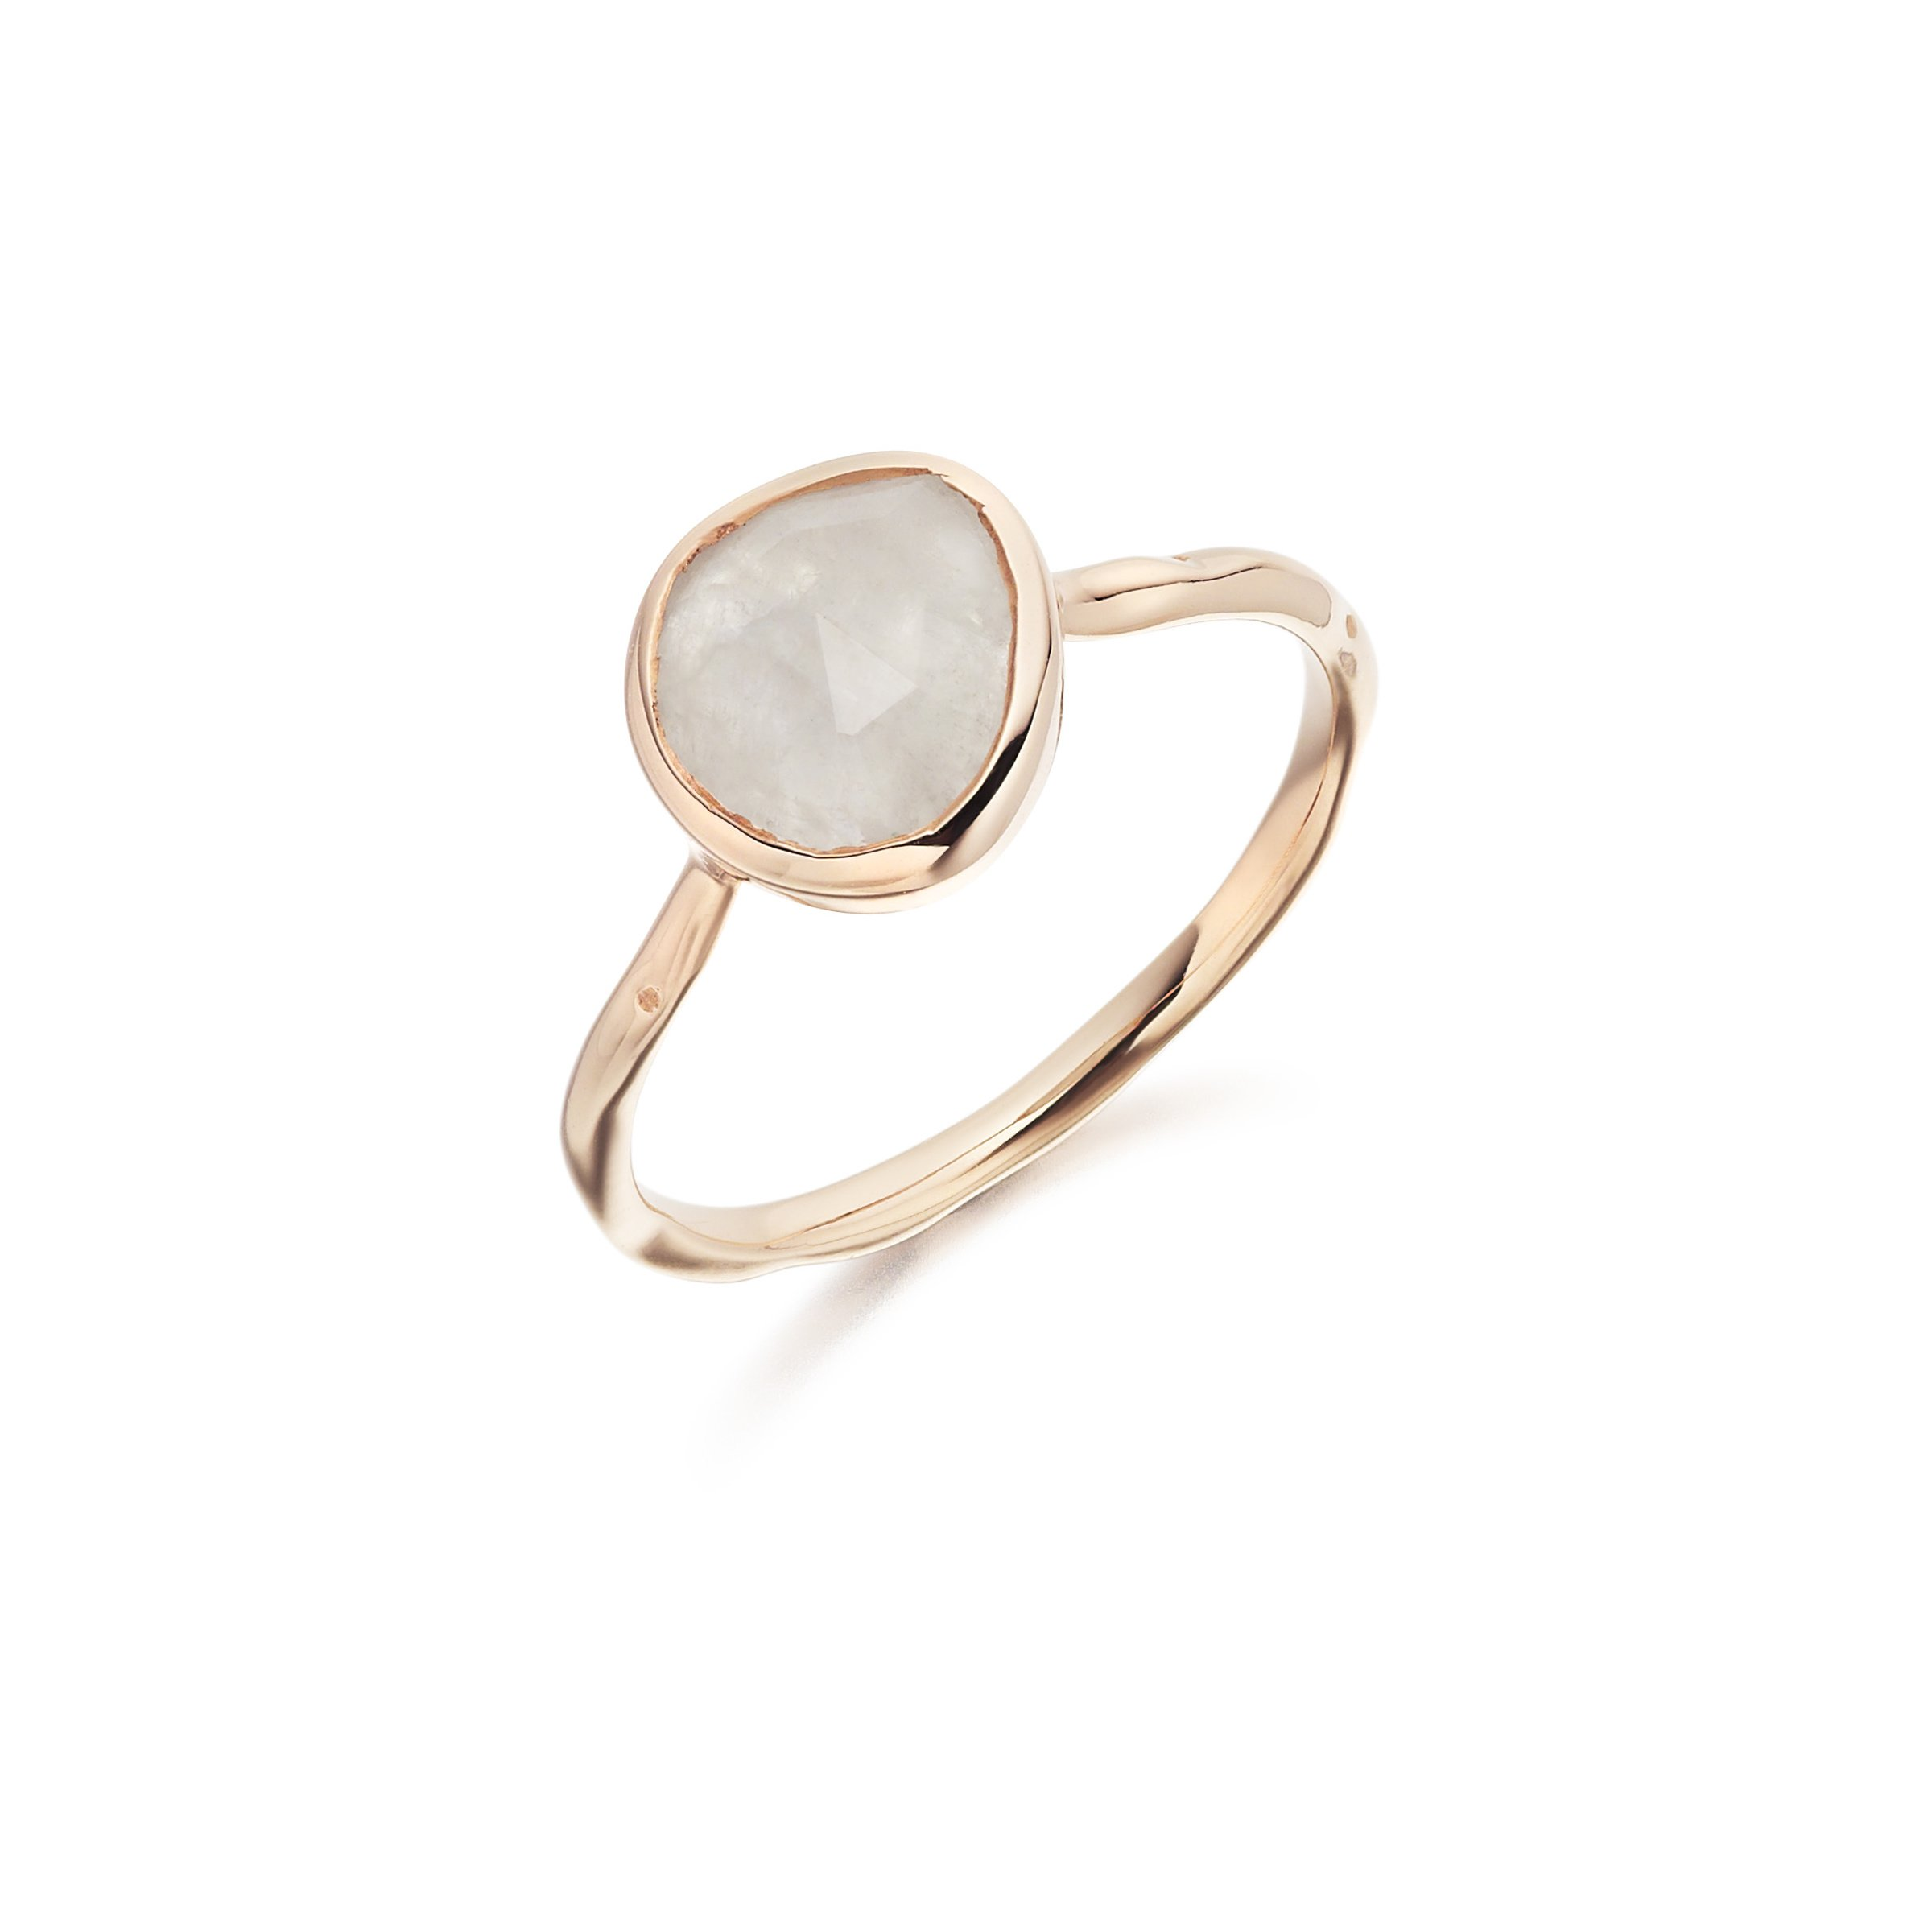 Moonstone Engagement Ring, Monica Vinader